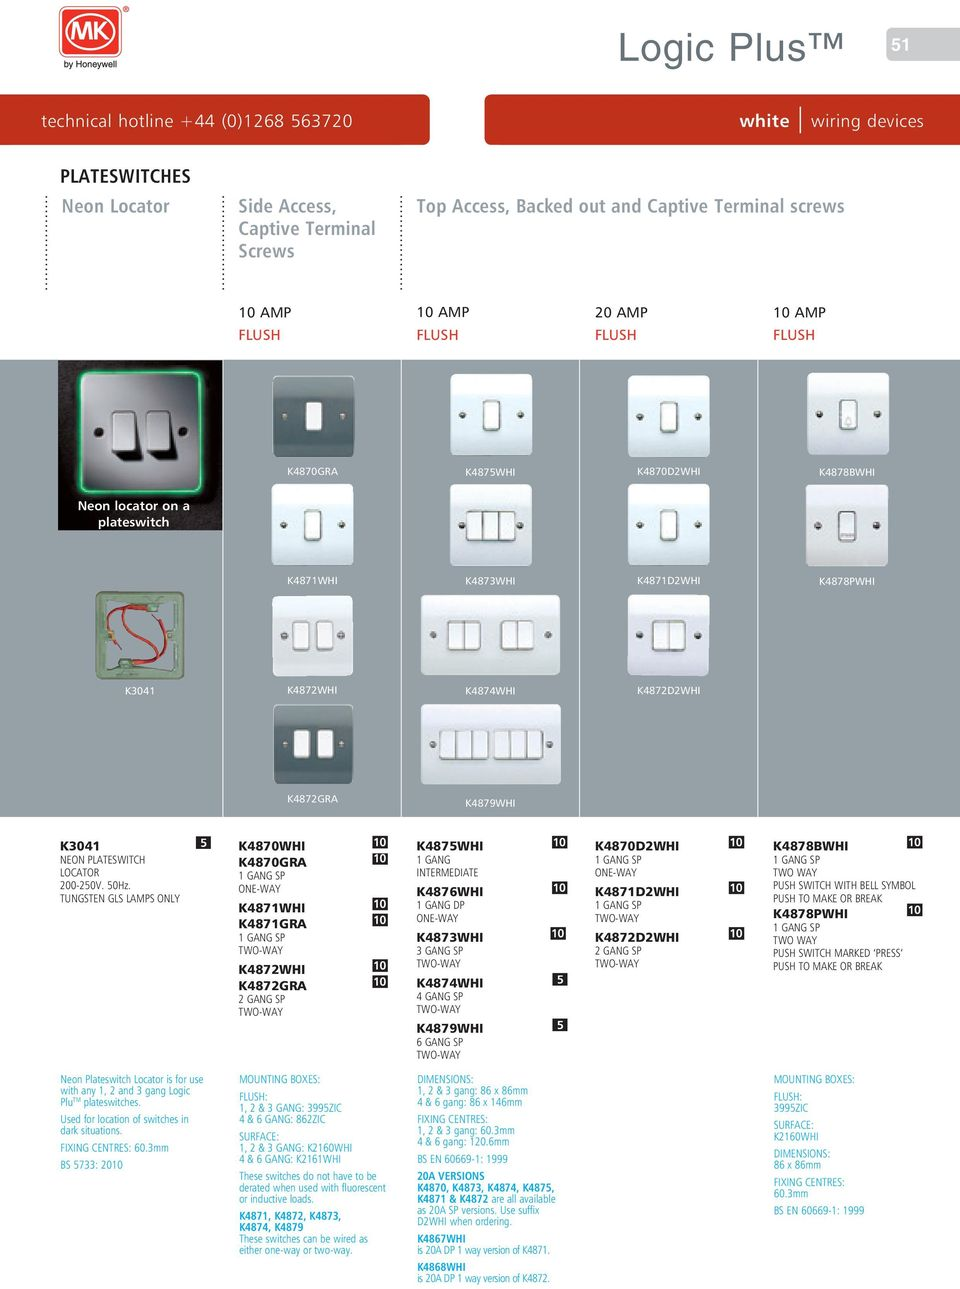 Logic Plus. wiring devices white - PDF